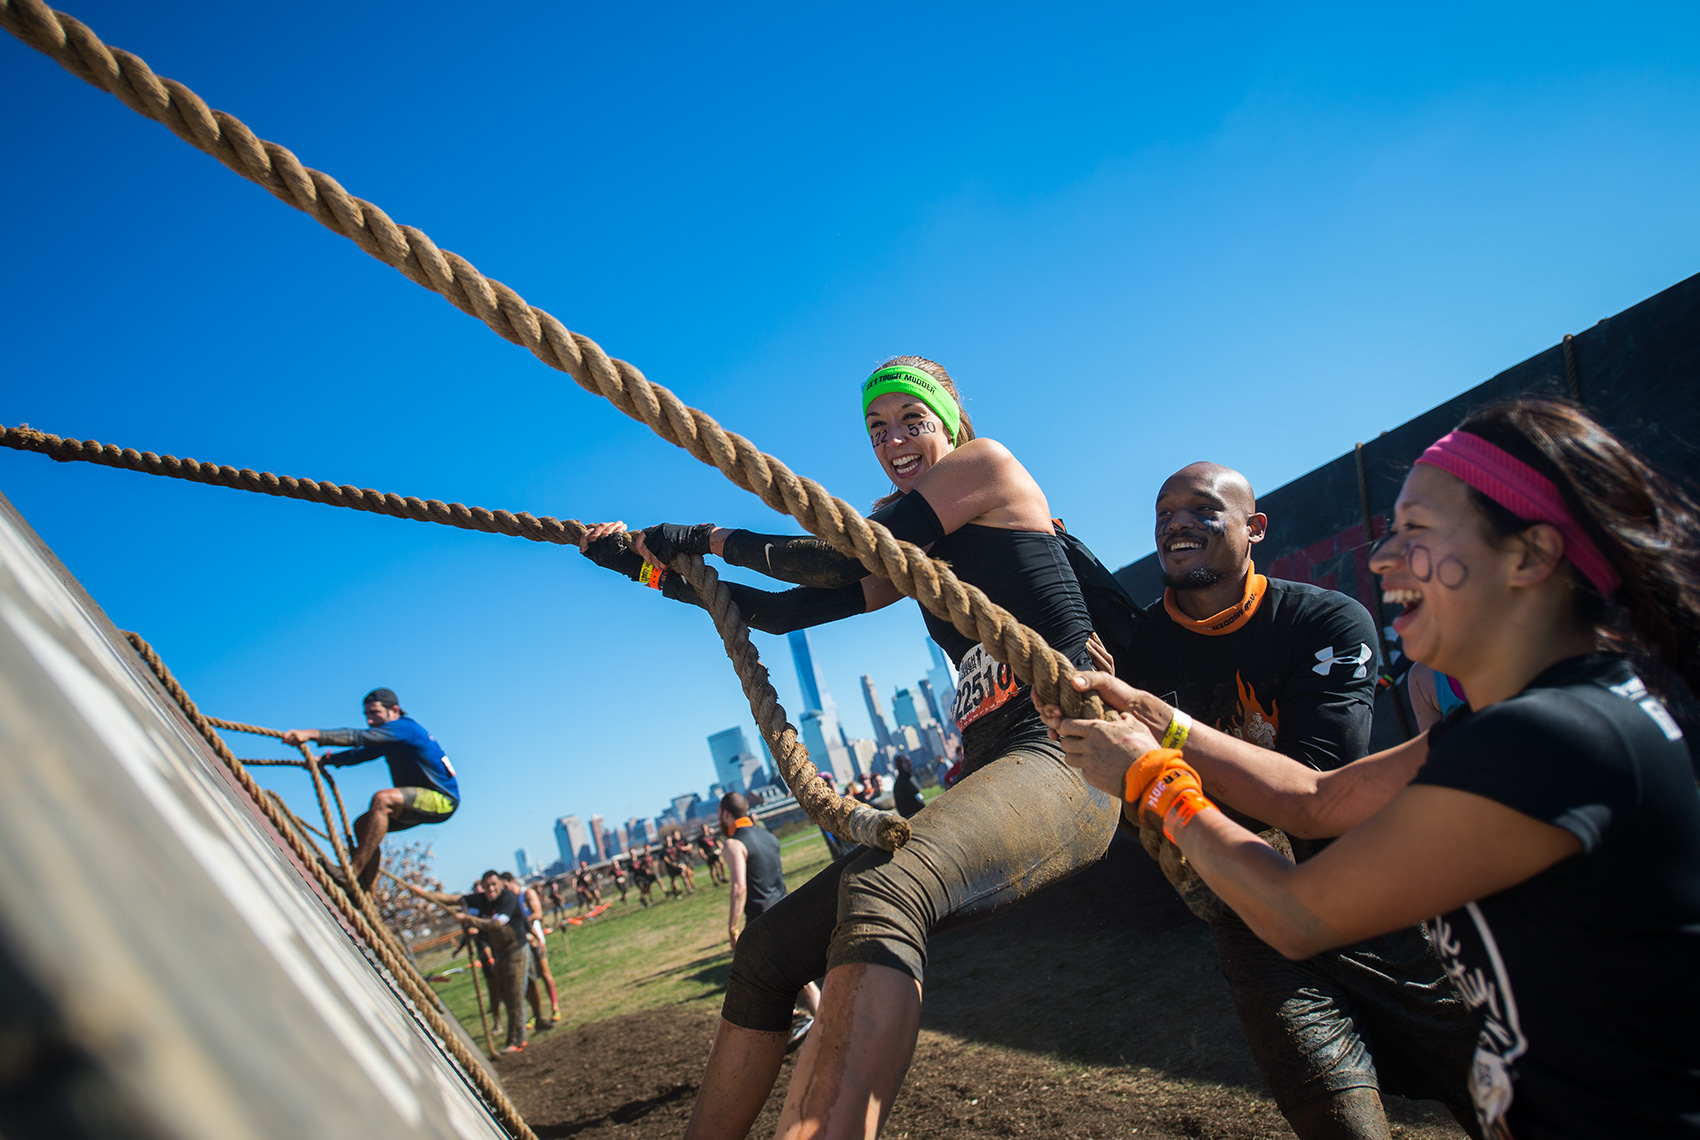 cacicedo_toughmudder_ropes